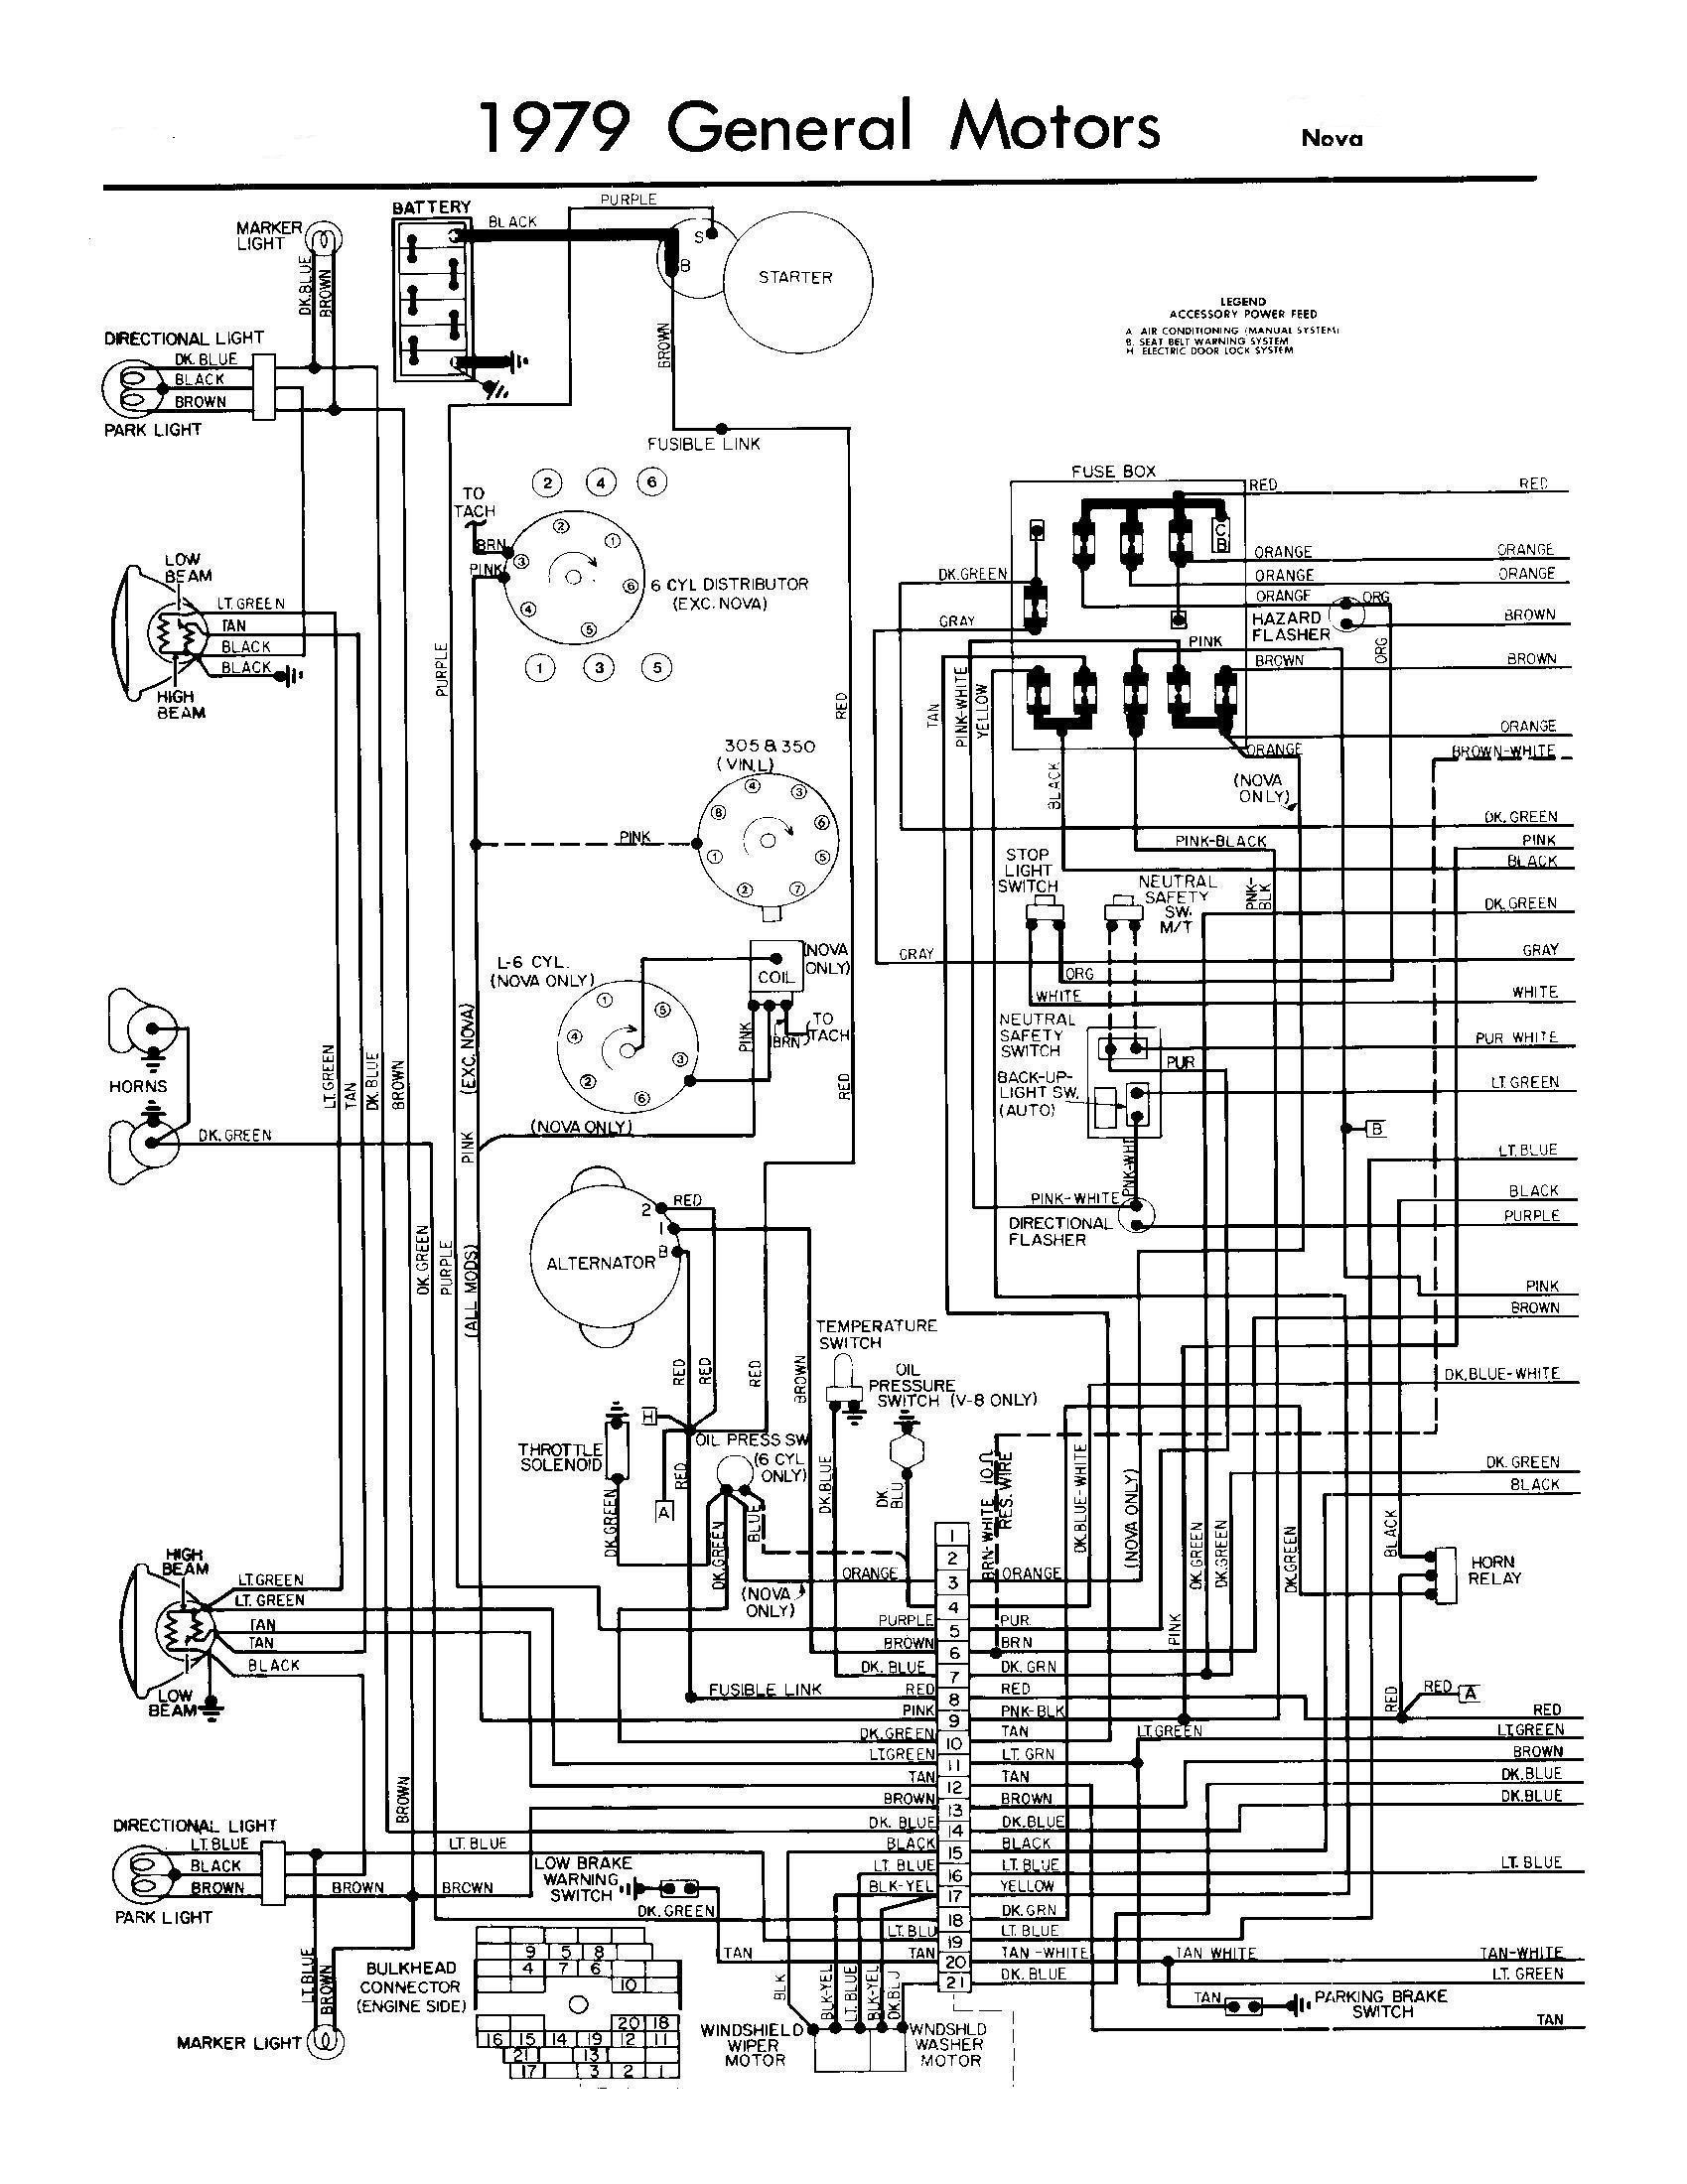 1966 corvair wiring diagram most uptodate wiring diagram info • corvair wiring diagram fe wiring diagrams rh 34 bildhauer schaeffler de 1965 corvair wiring diagram 1957 ford wiring diagram